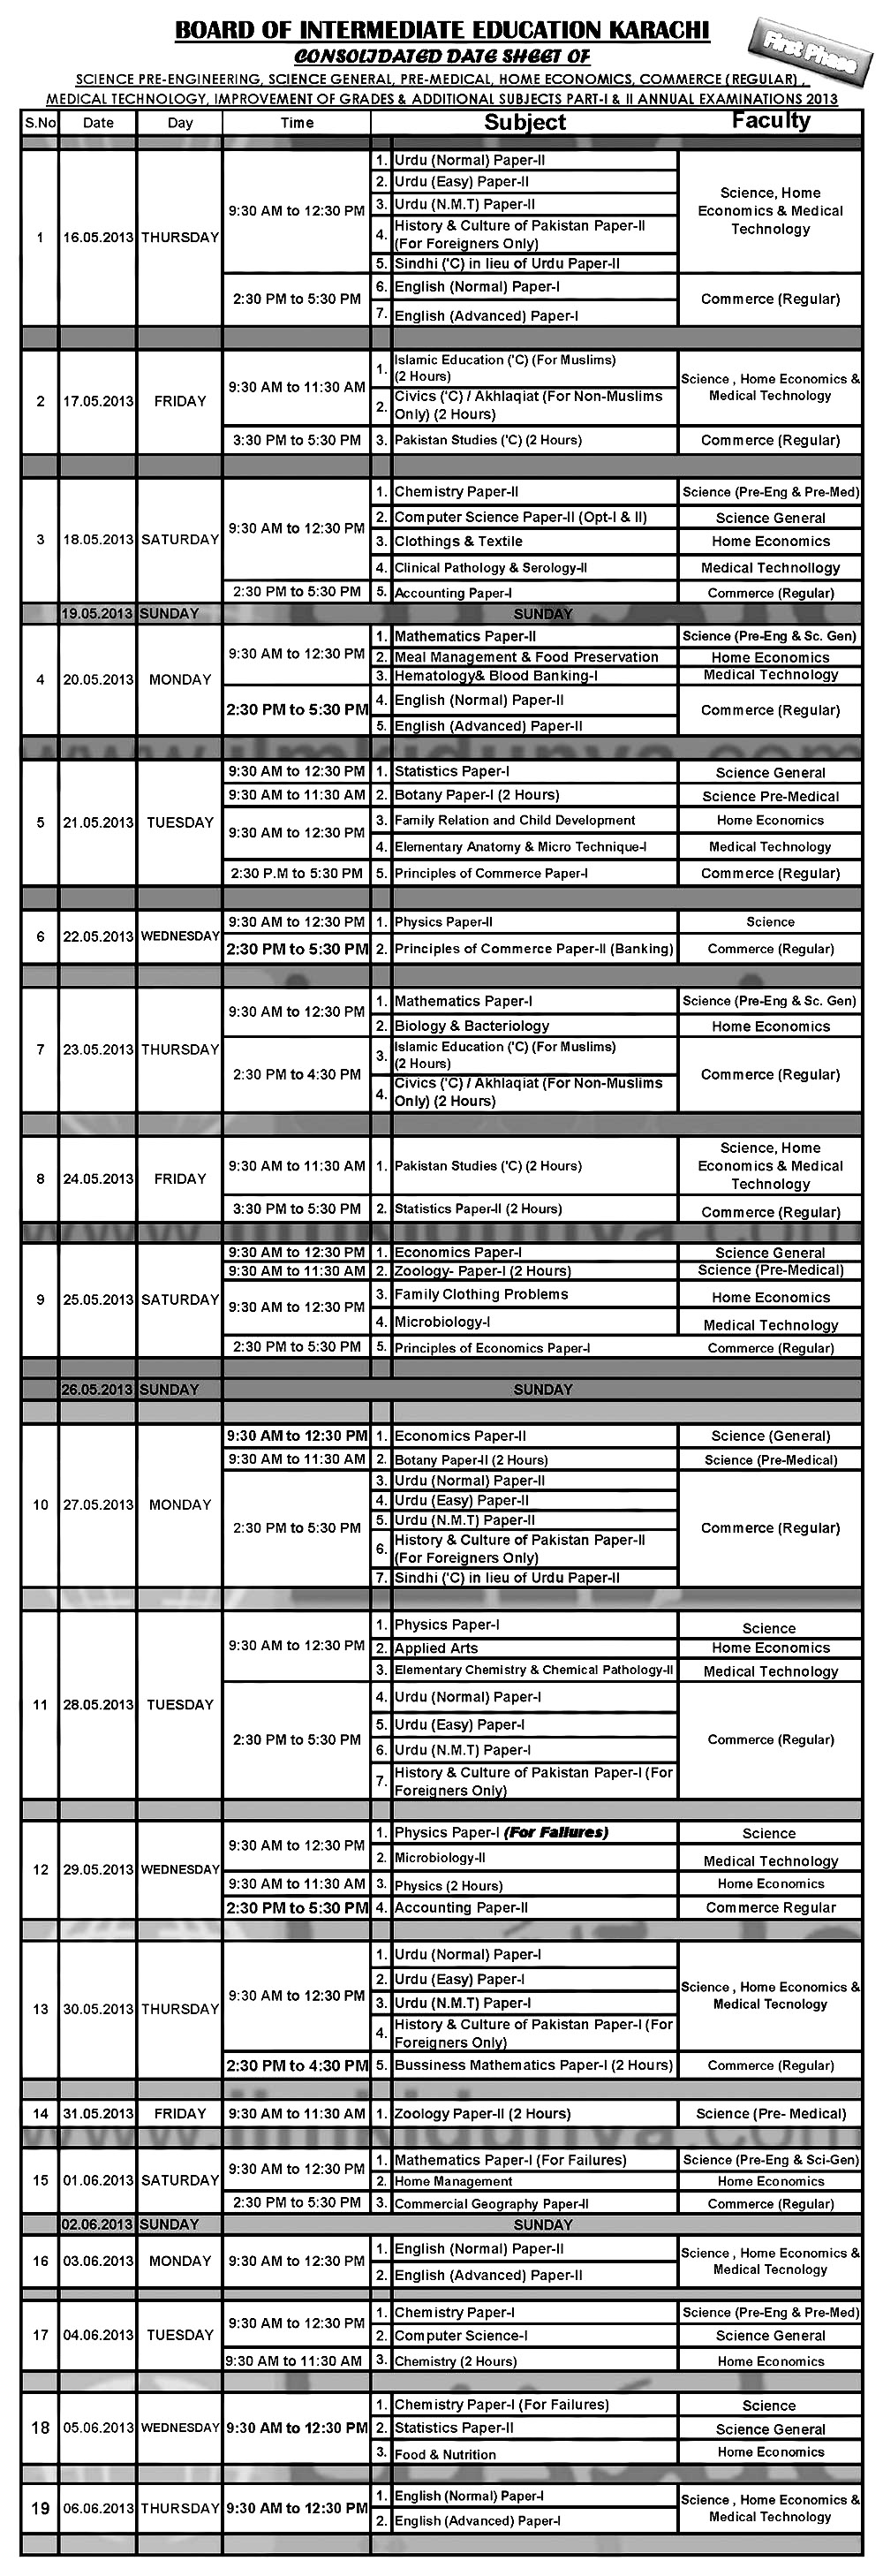 karachi-inter-date-sheet-2013 inter HSSC part-i-ii exams 2013 karachi